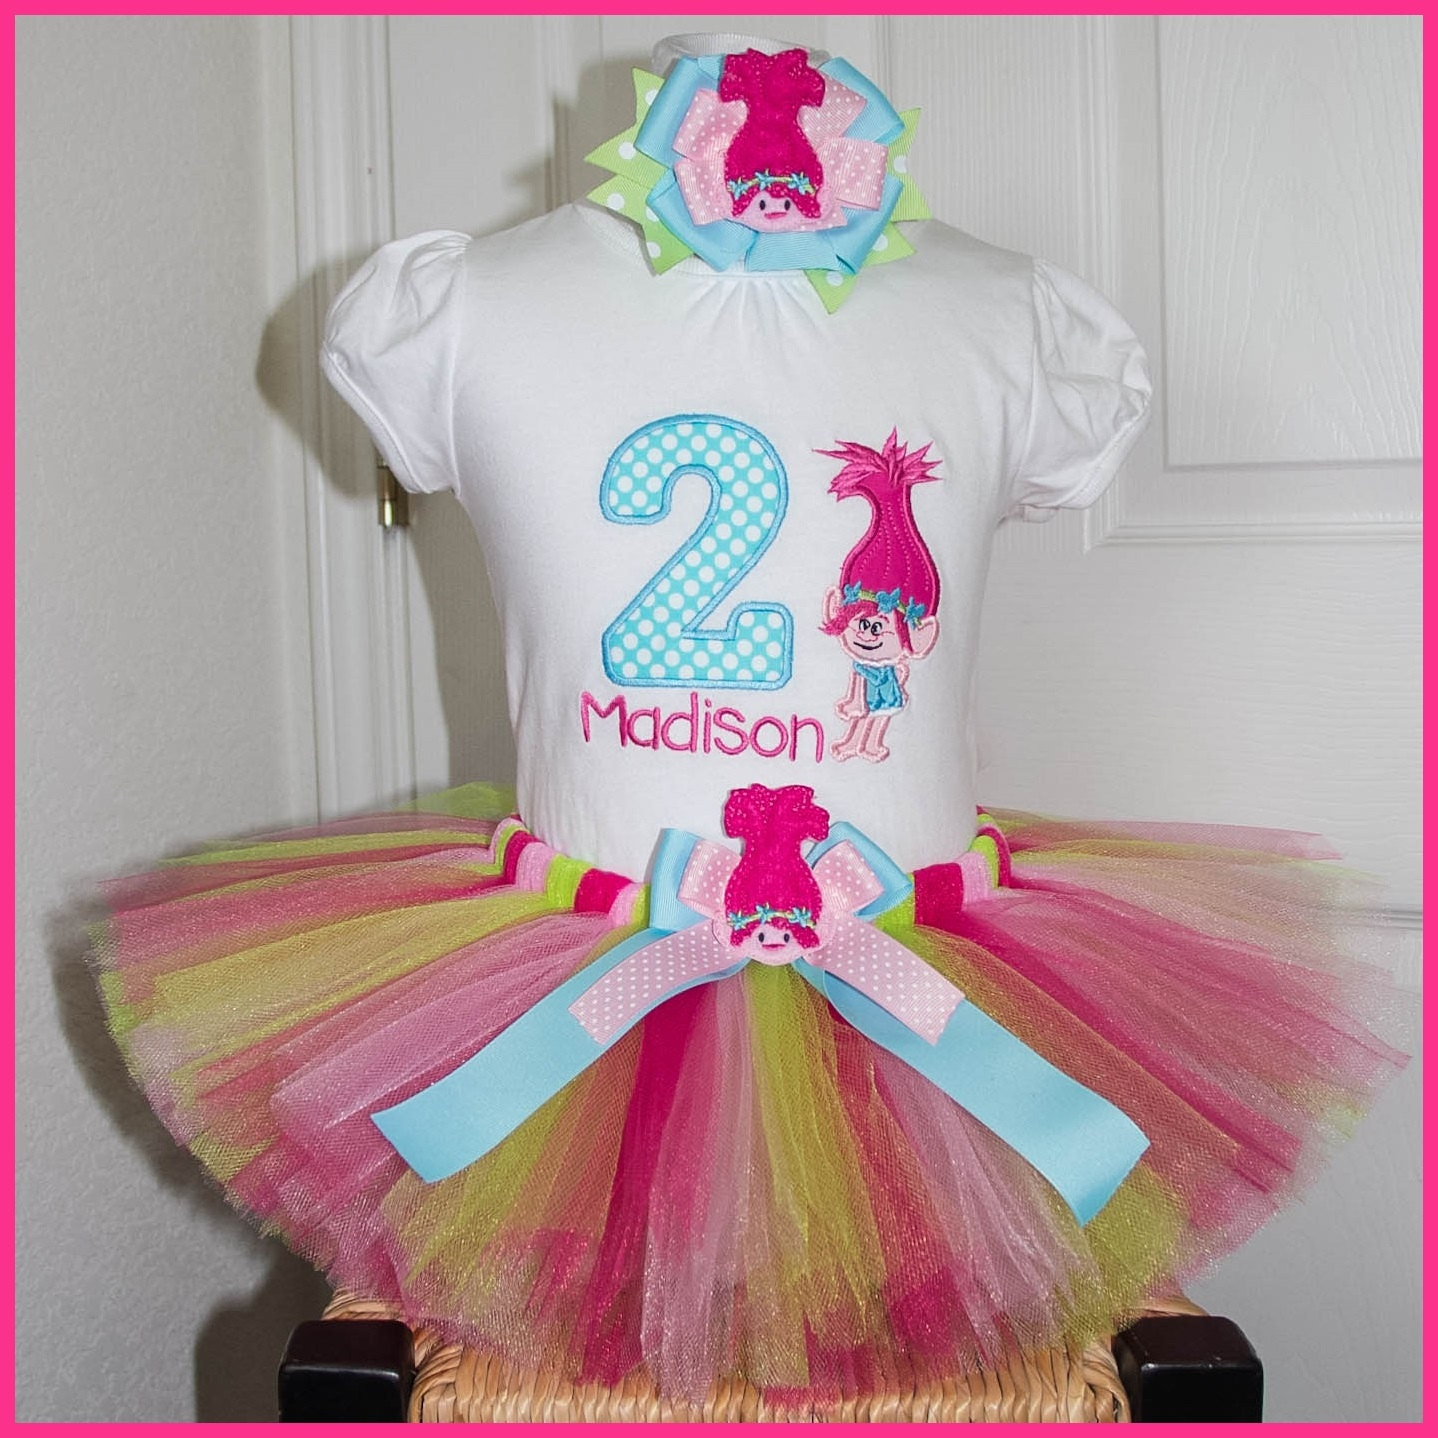 Birthday Party Outfit: New Poppy Troll Tutu Birthday Outfit Personalized With Name